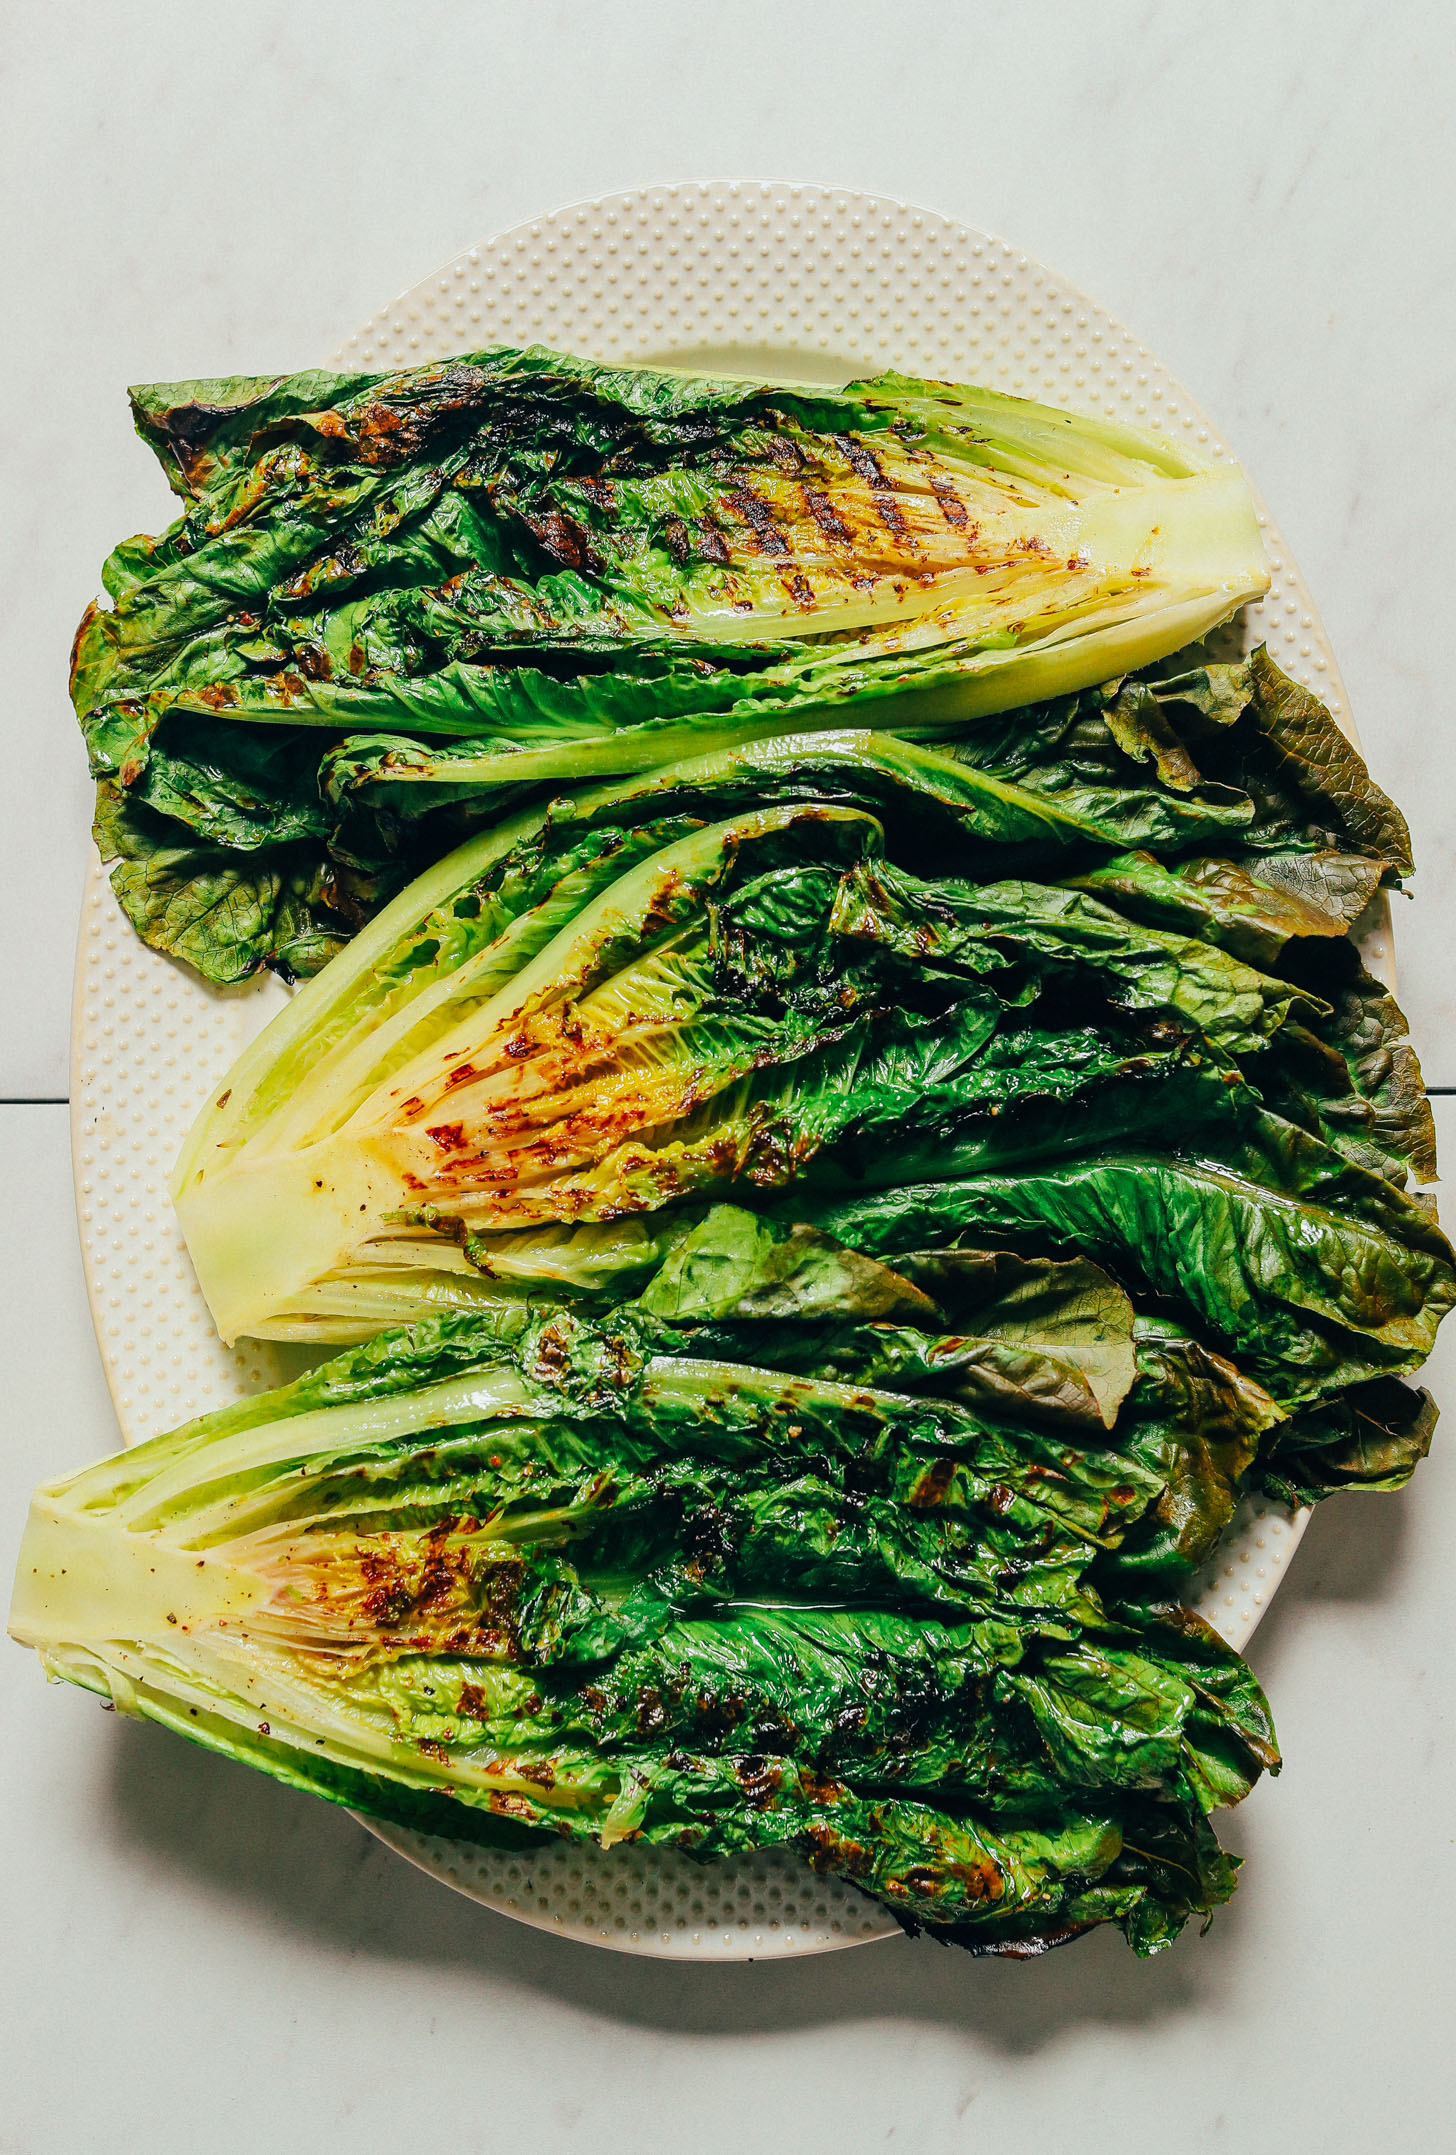 Platter of halved romaine heads grilled on a grill pan